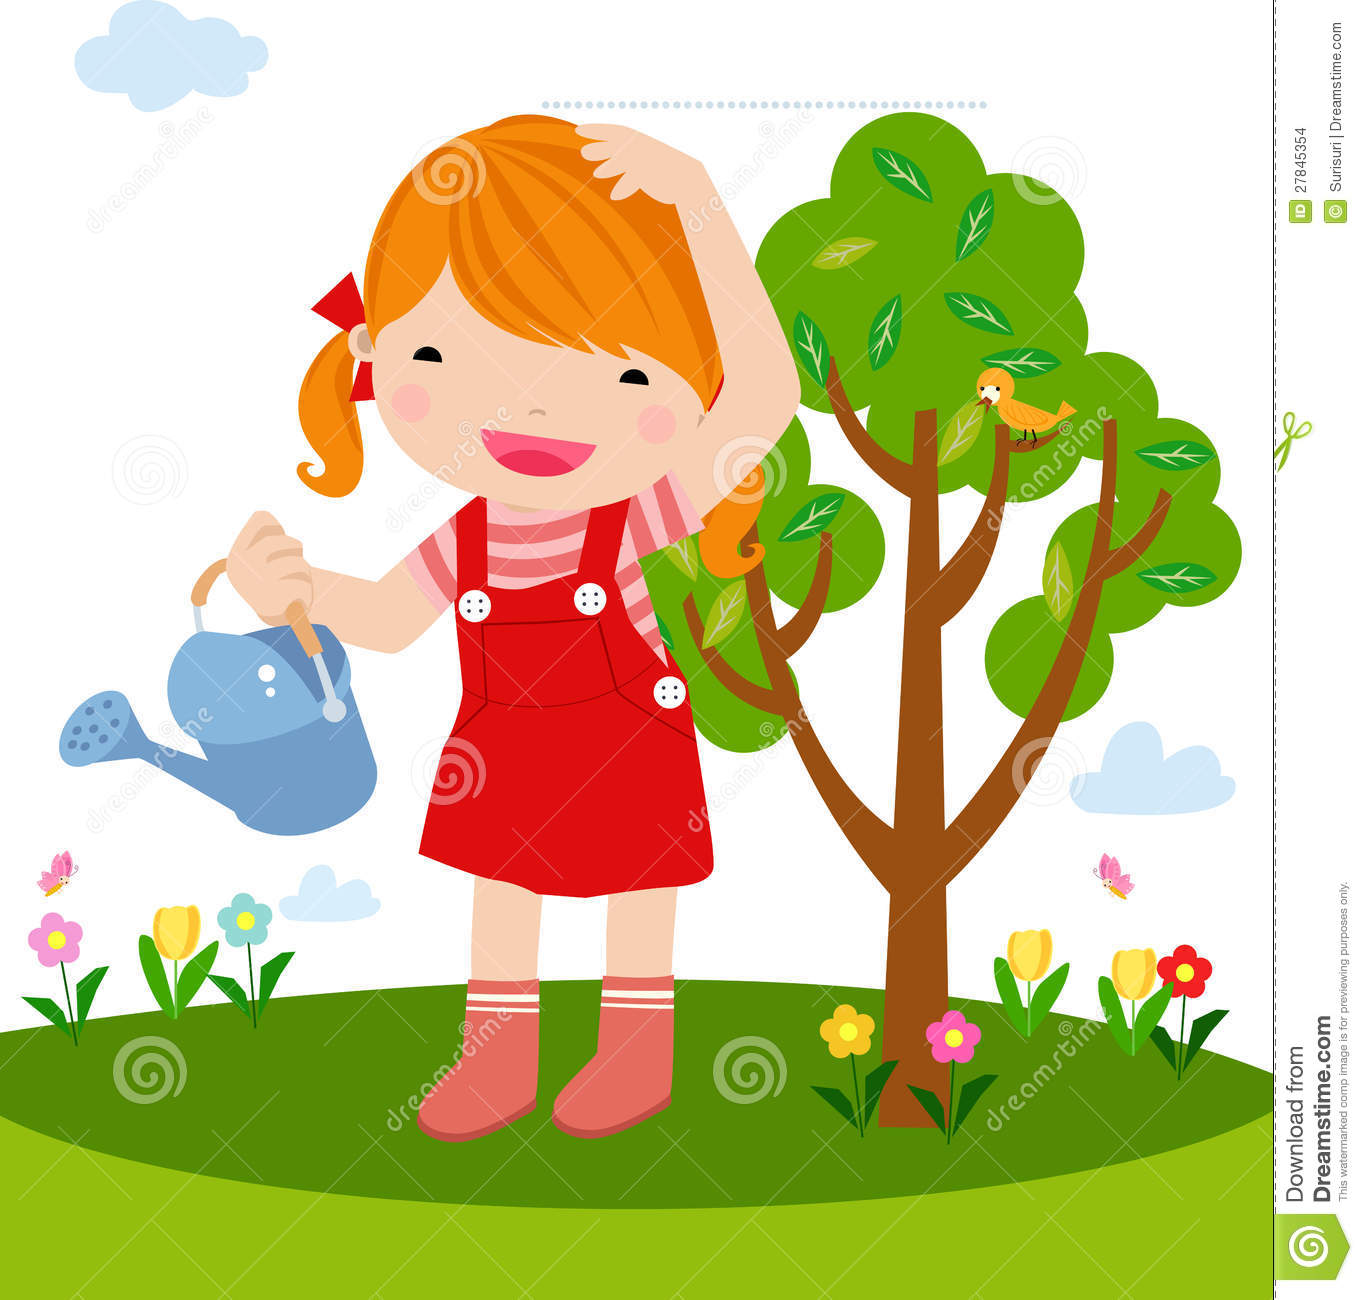 Clipart plant a tree.